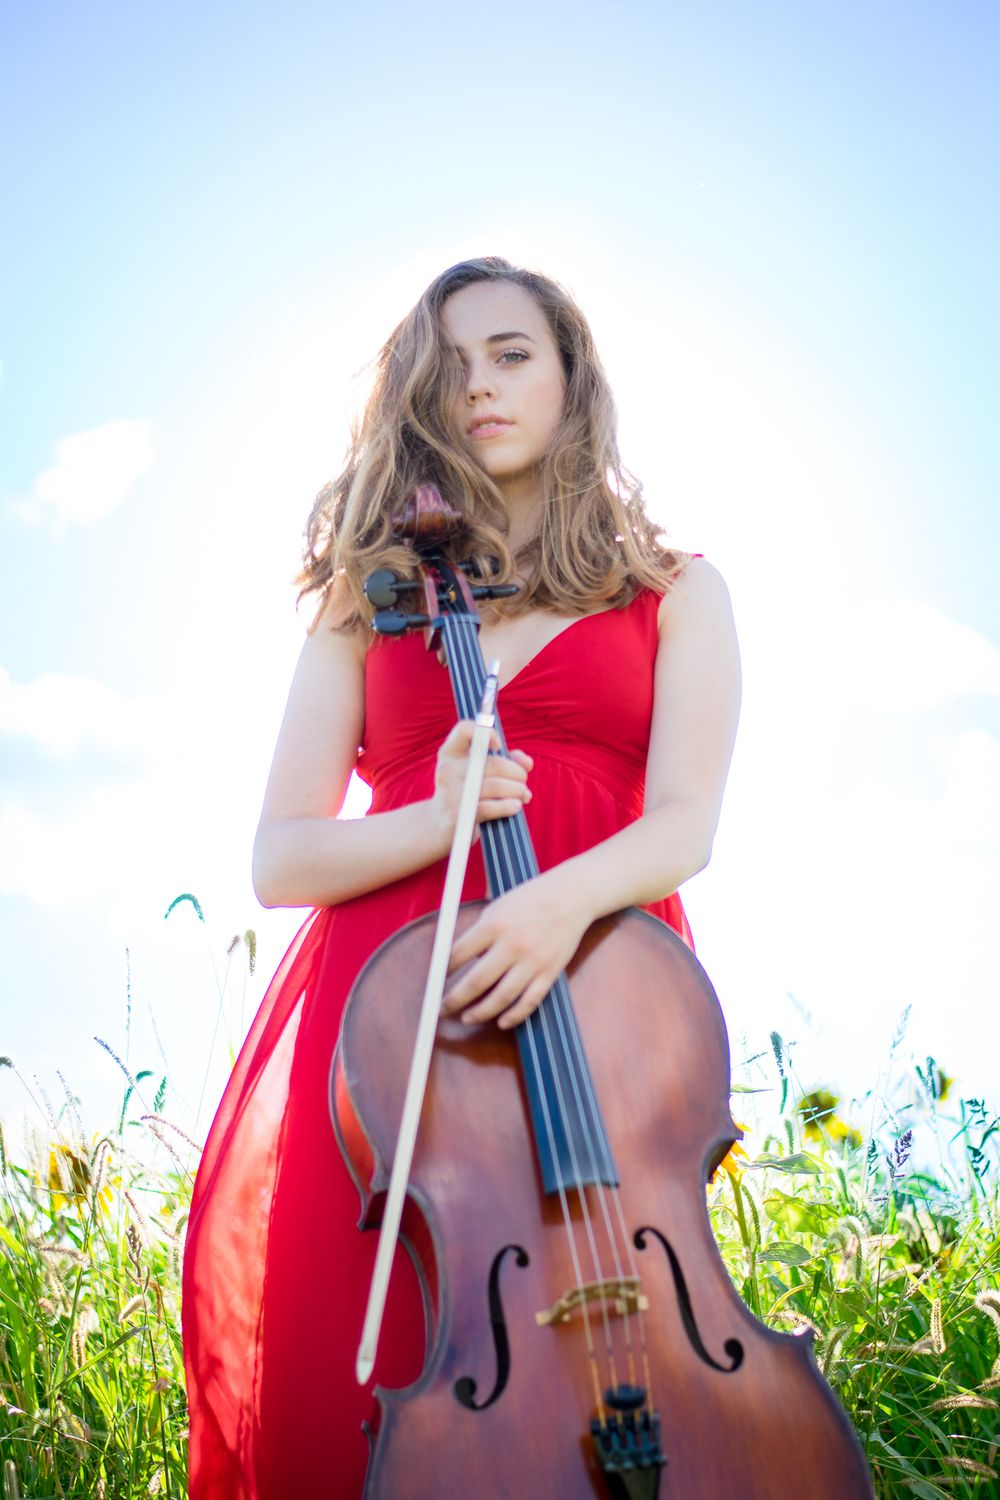 young girl in red dress with cello standing in a sunflower field with a blue sky and sun behind her